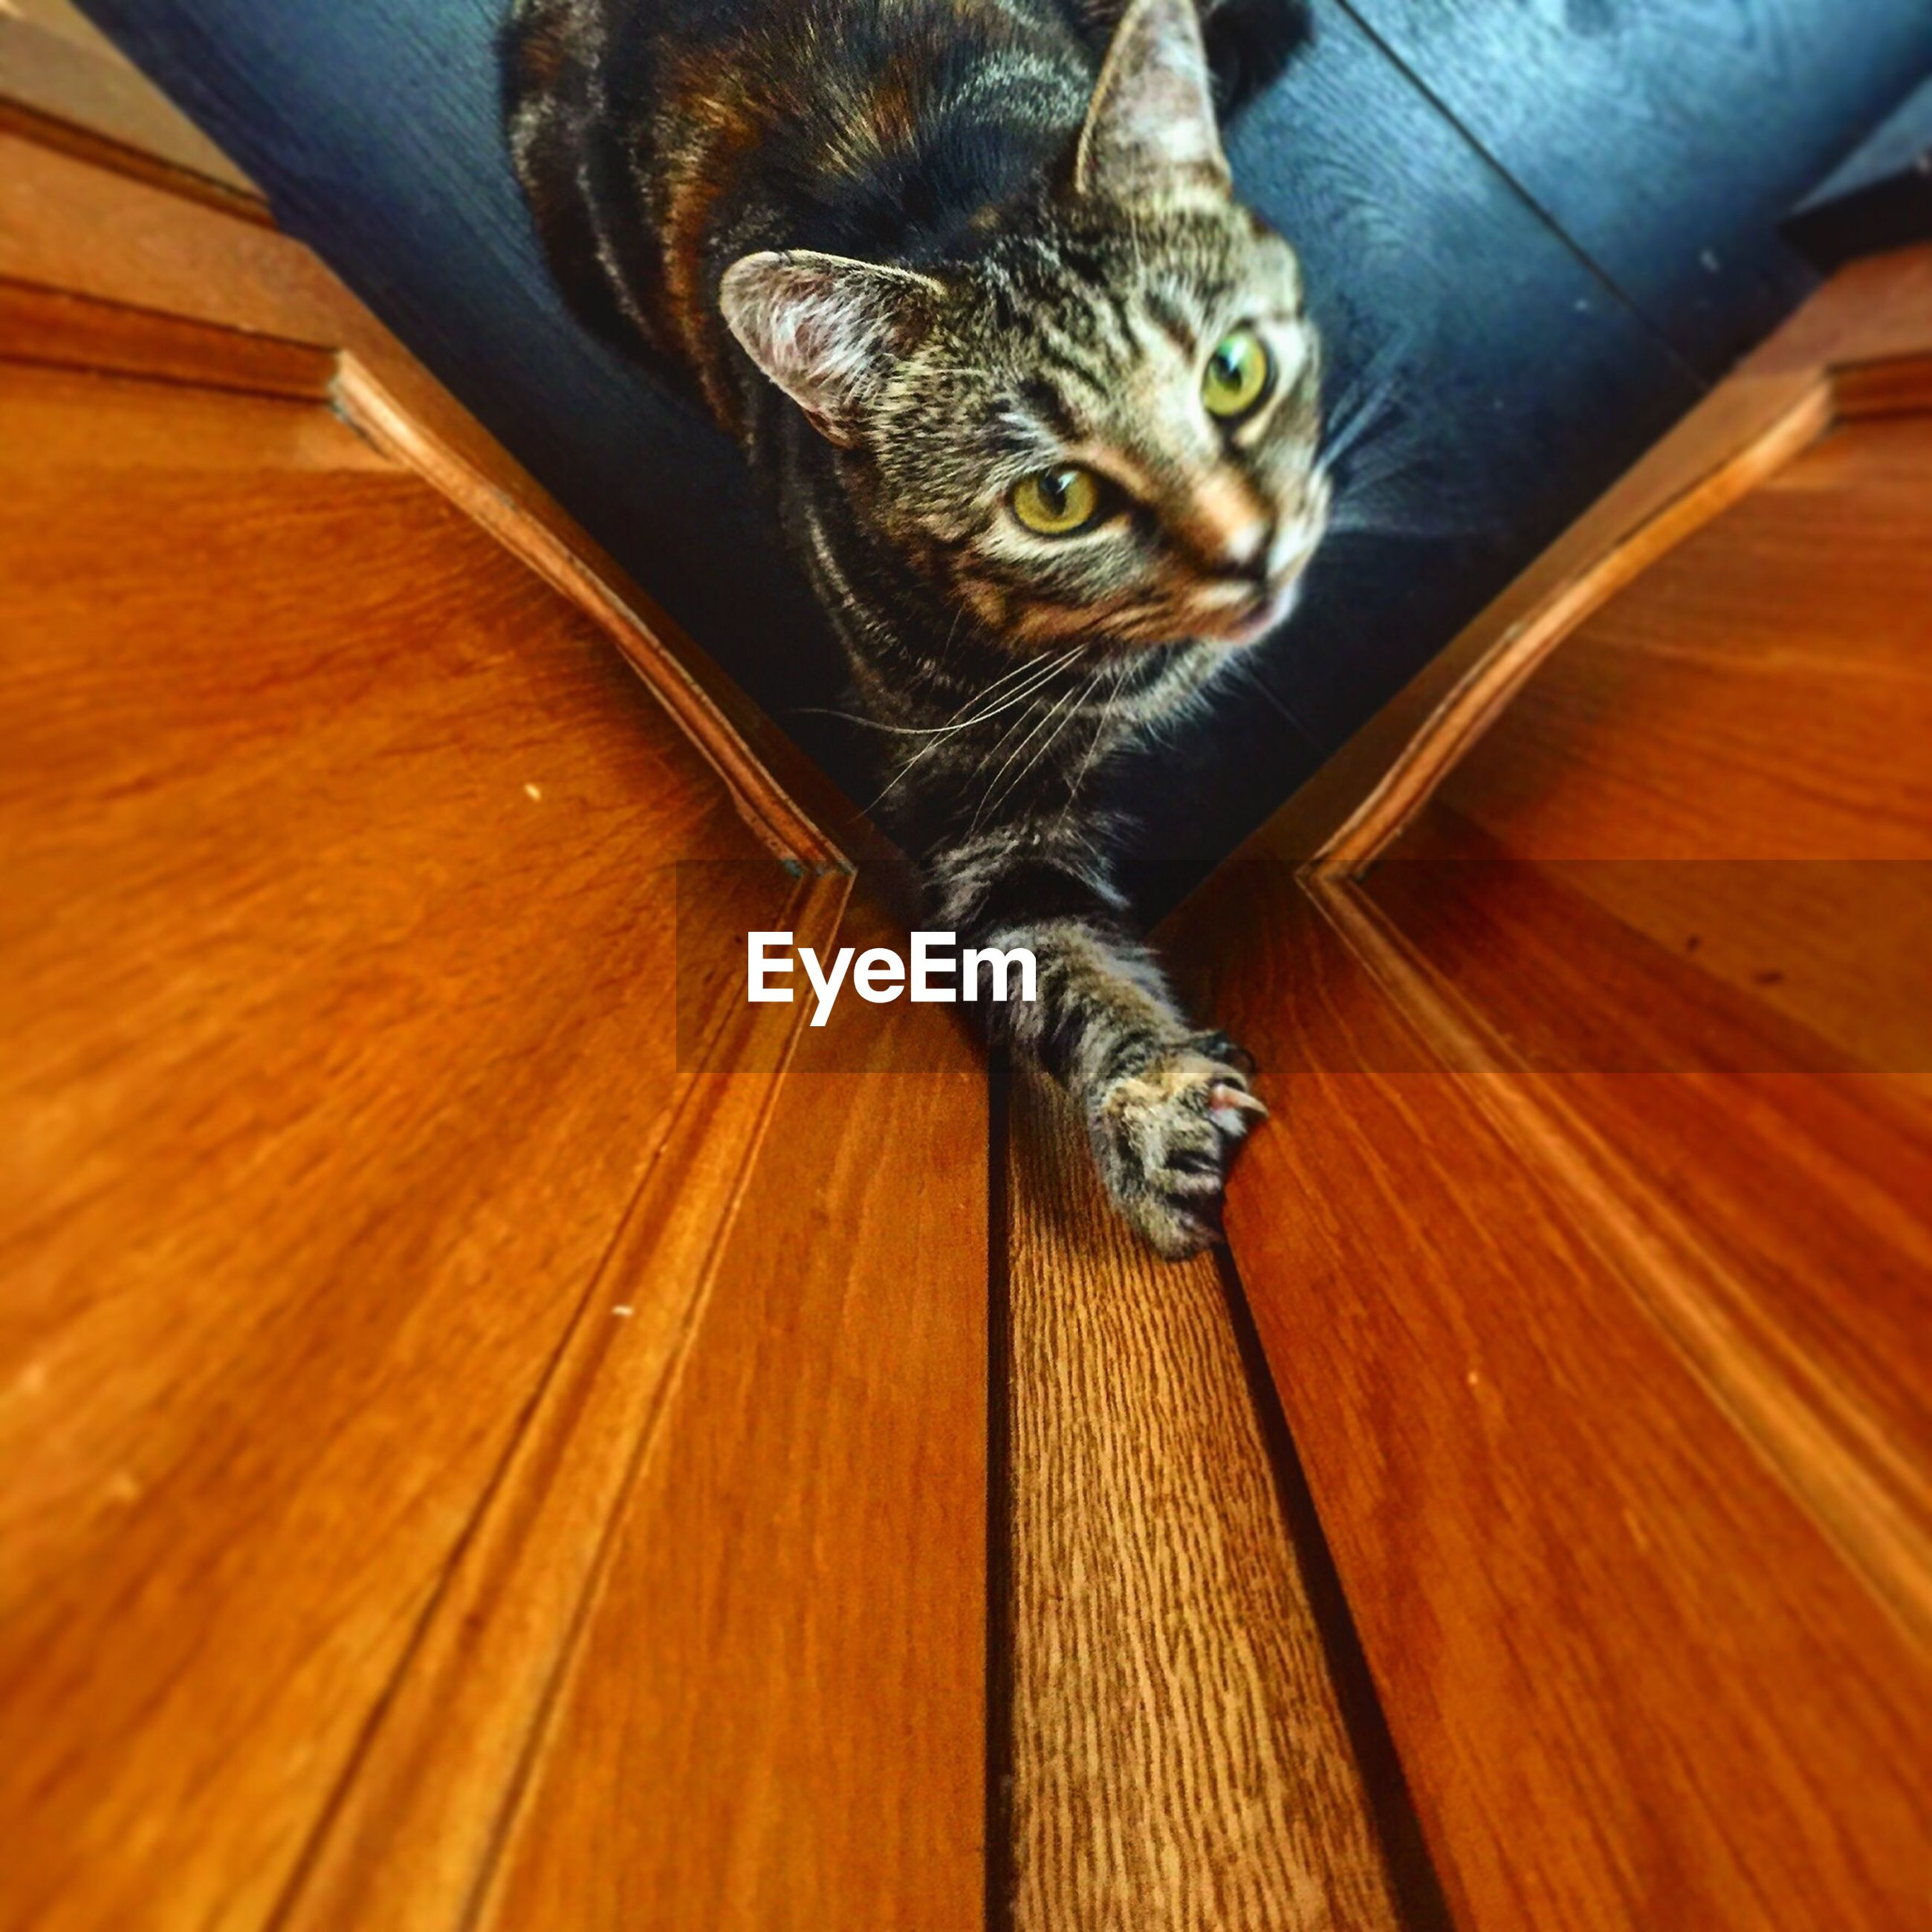 Directly above view of tabby by cabinets in kitchen at home